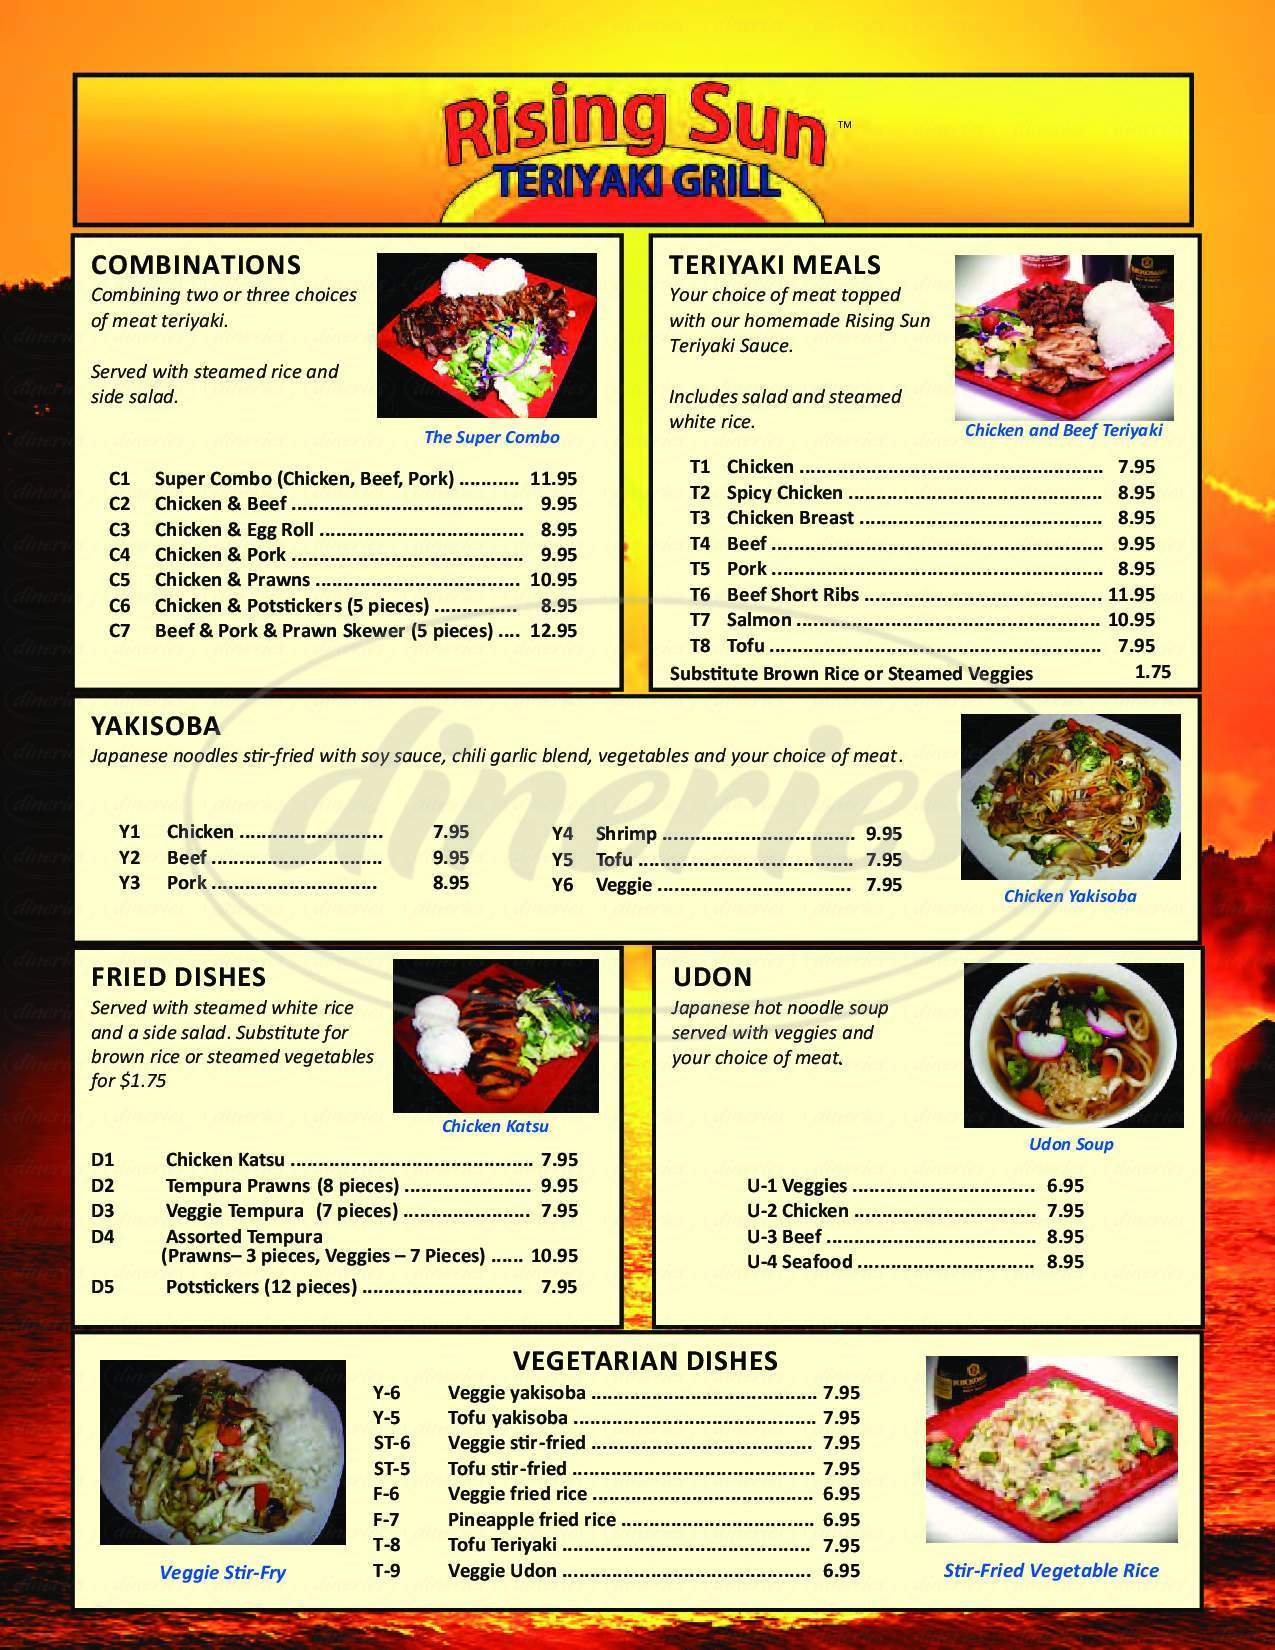 menu for Rising Sun Teriyaki Grill